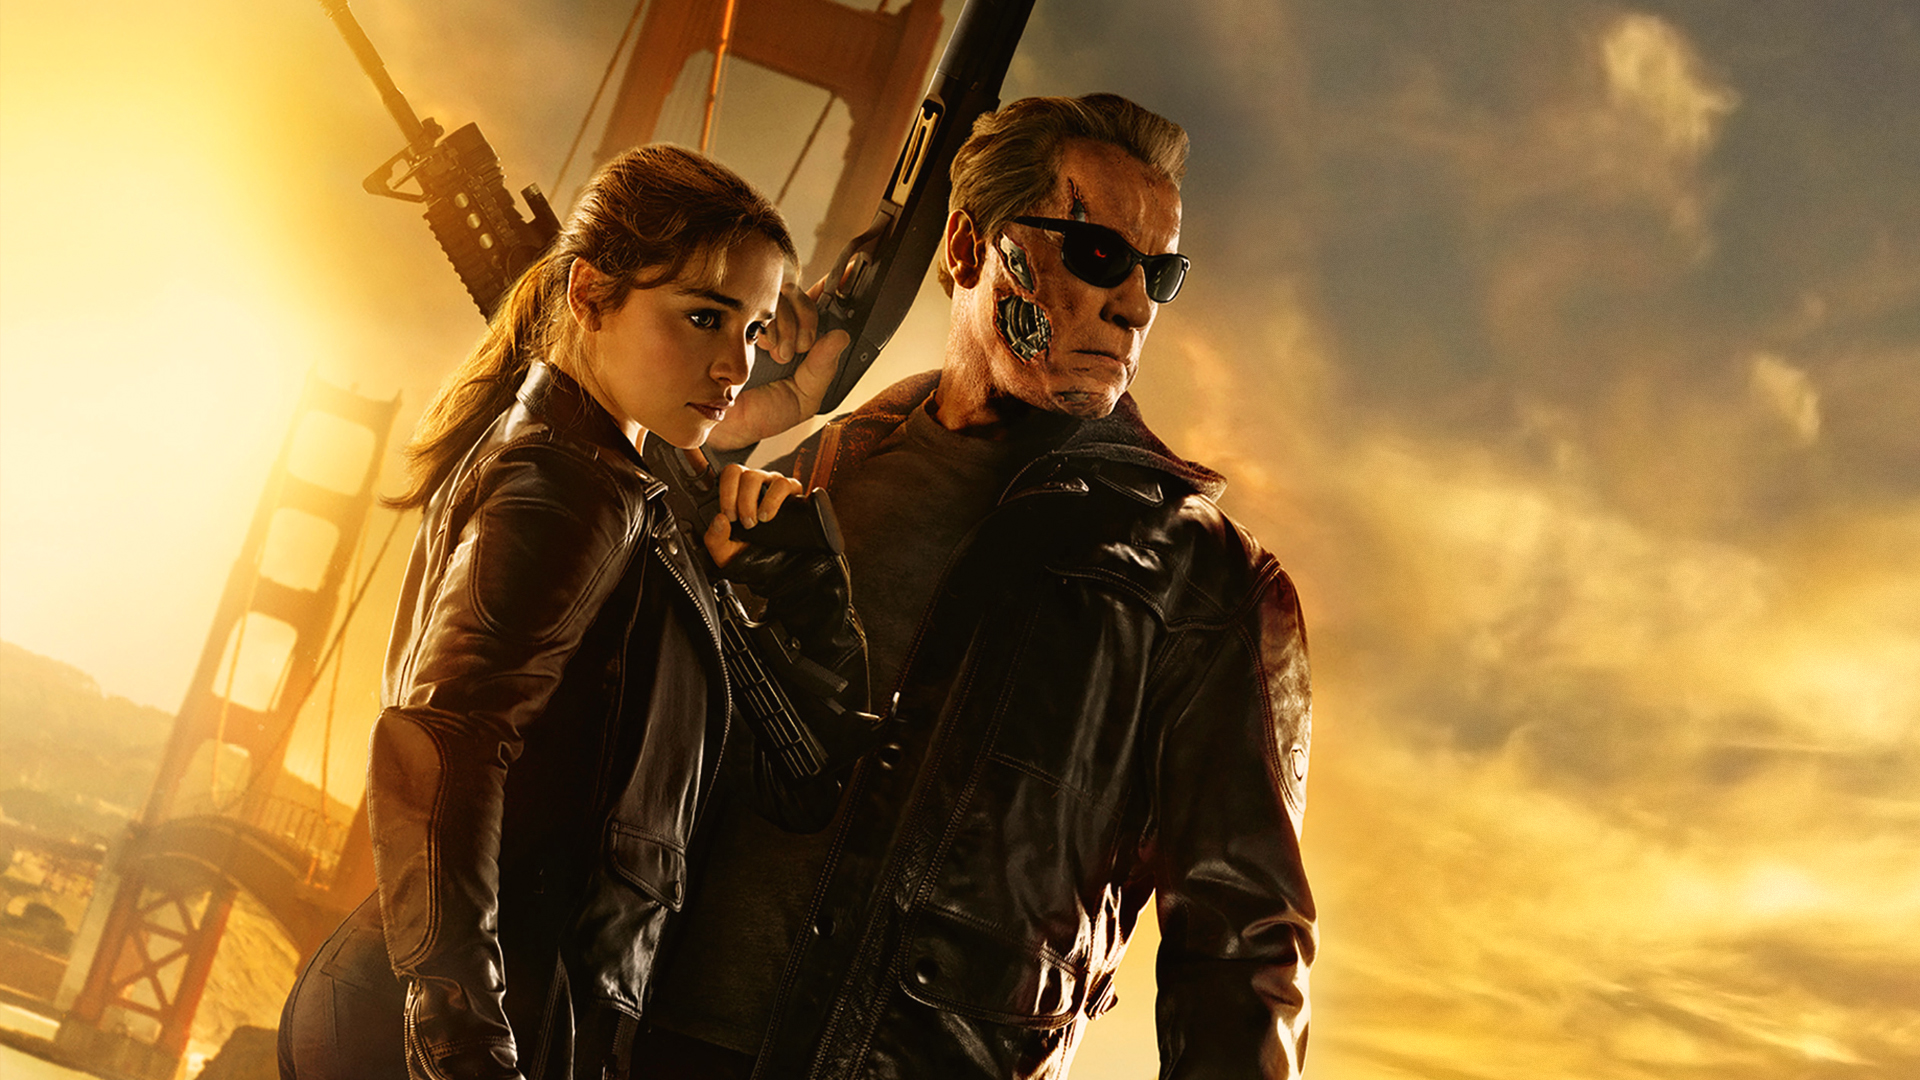 Film Review: Terminator Genisys